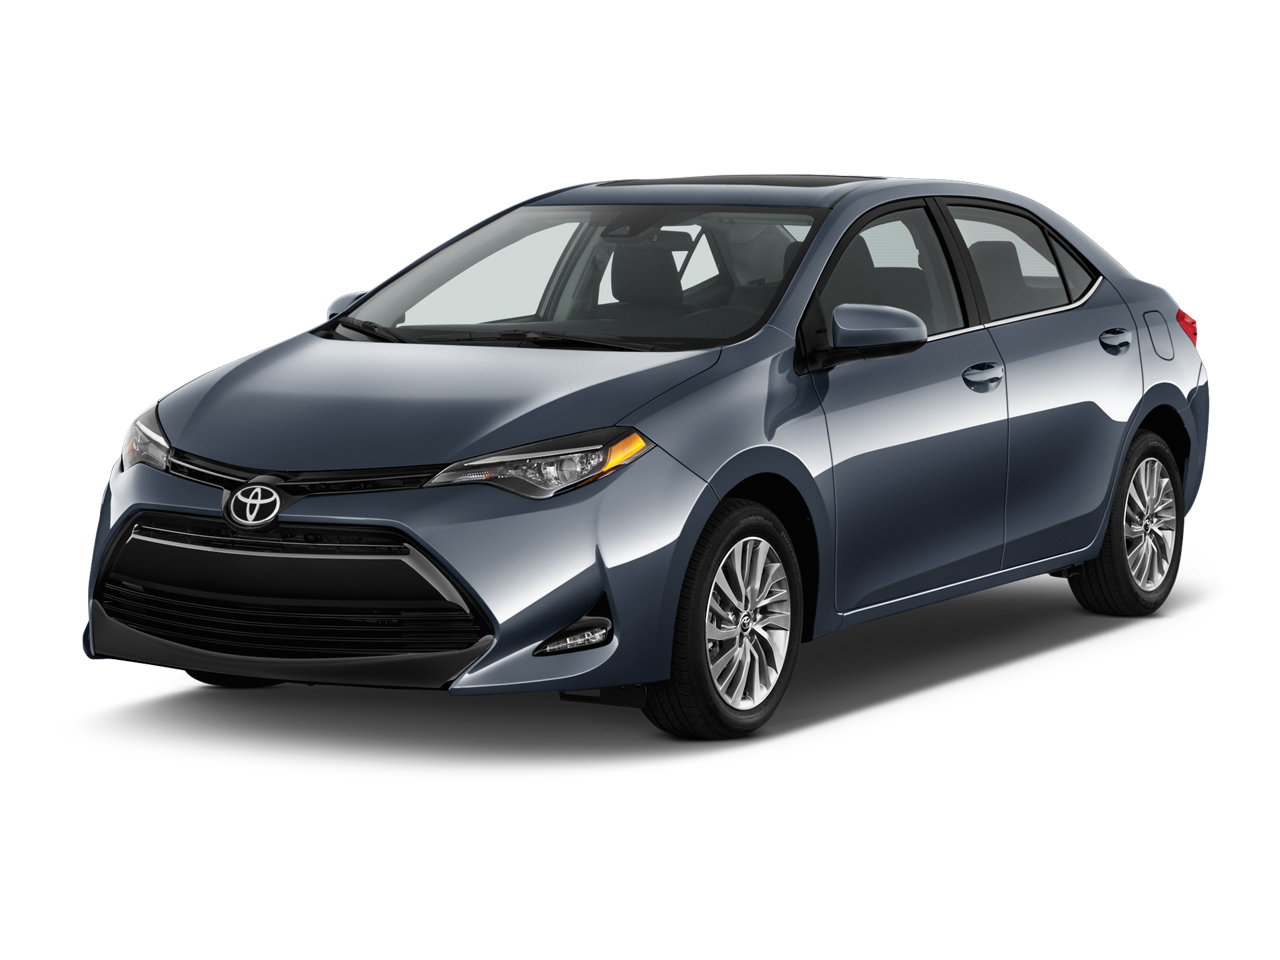 new 2017 toyota corolla le near lawrence ks crown toyota of lawrence. Black Bedroom Furniture Sets. Home Design Ideas